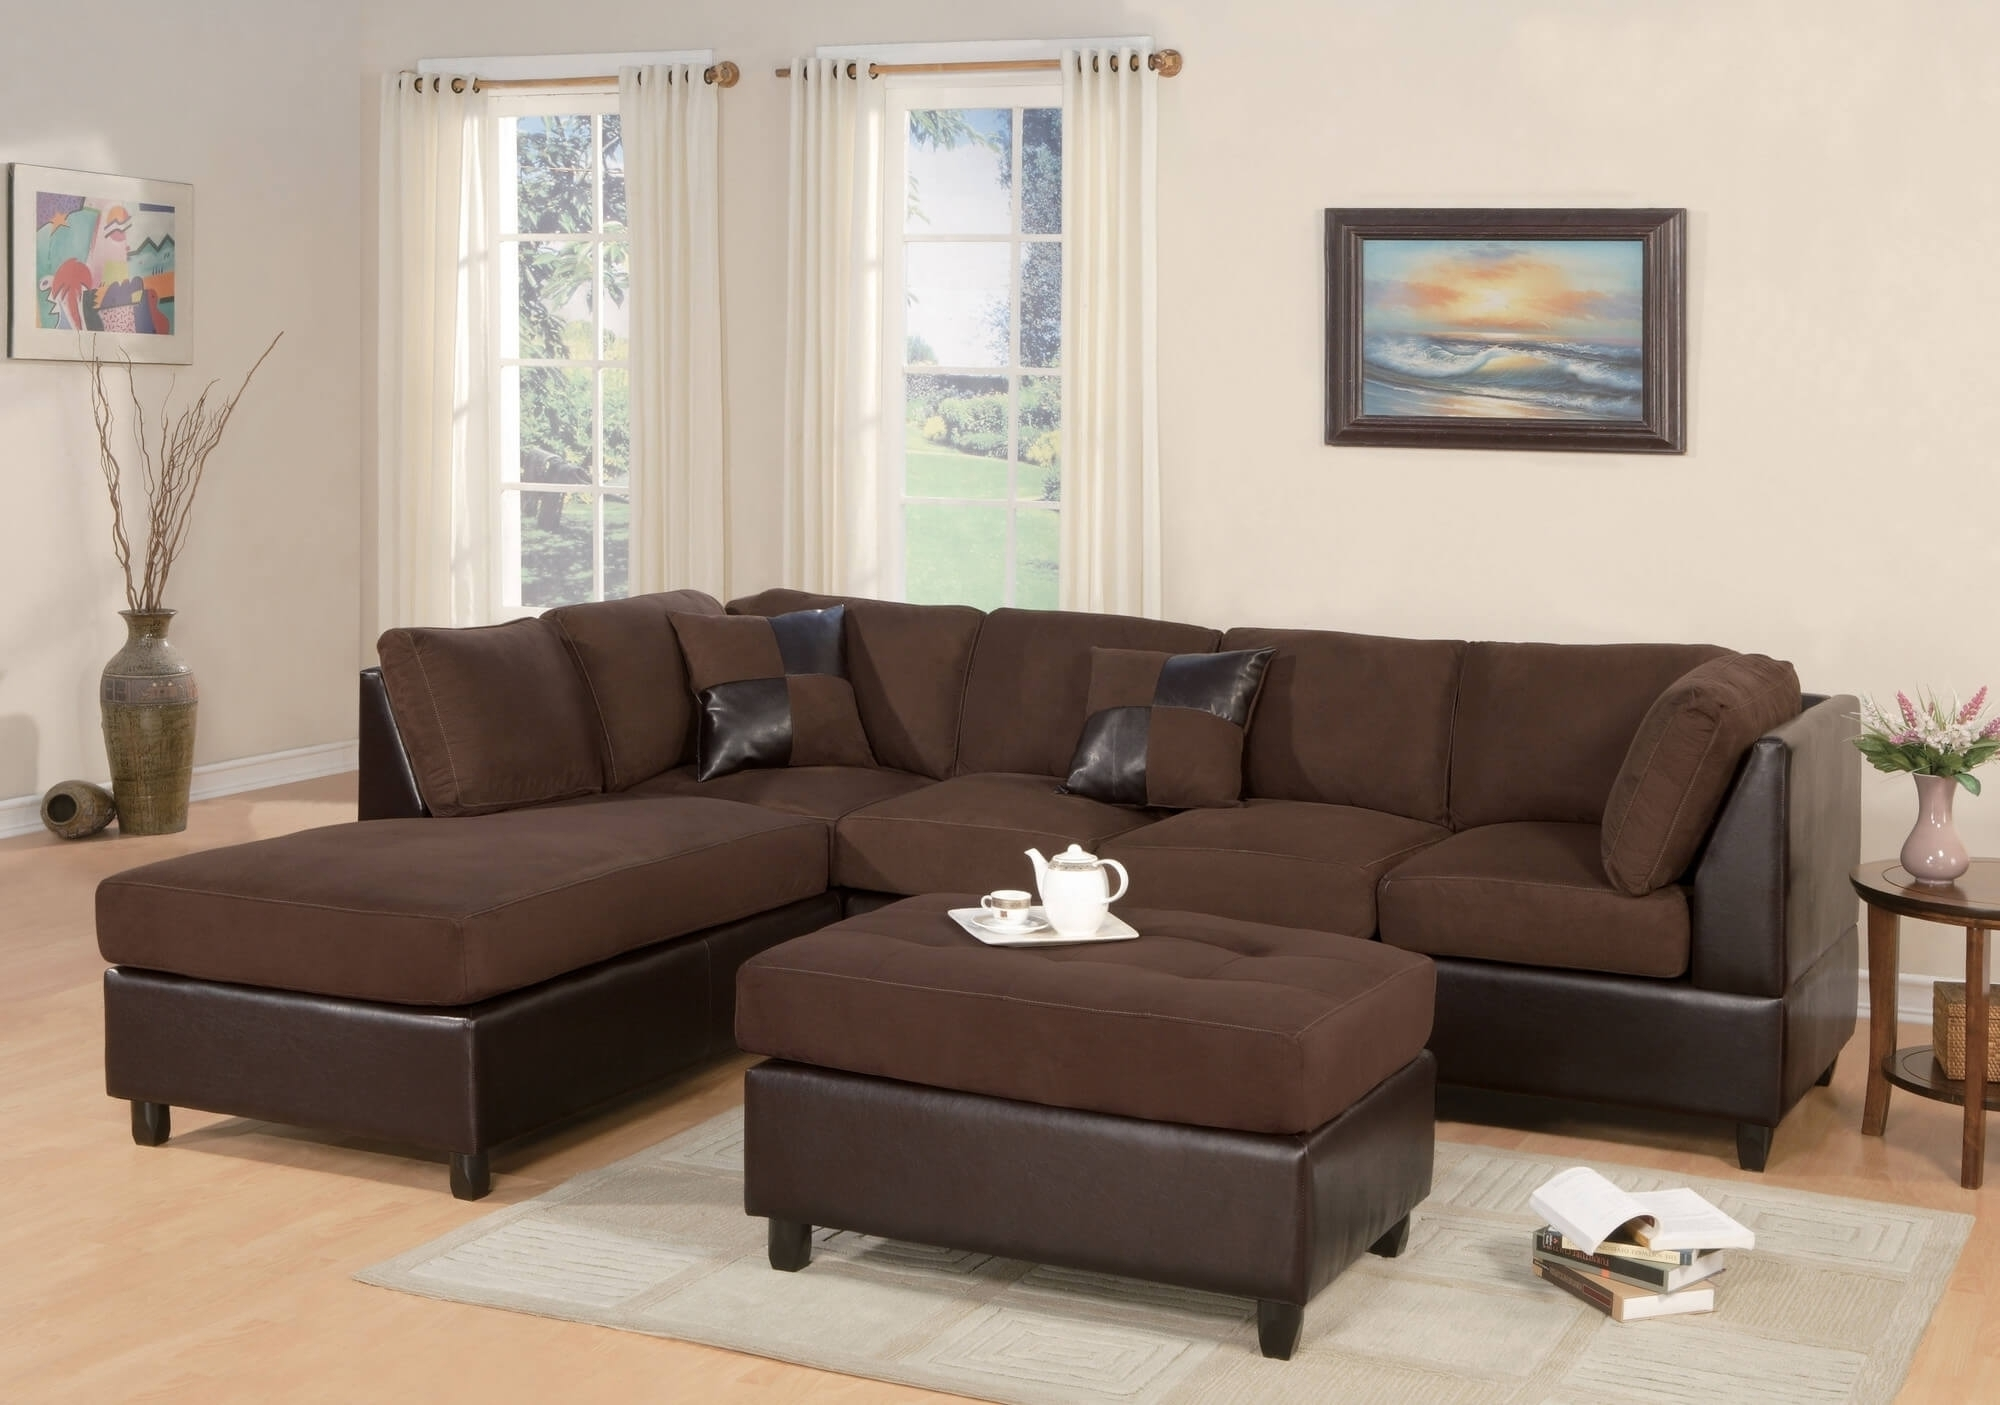 Current Photos Sectional Sofas Under $1000 – Buildsimplehome For Sectional Sofas Under  (View 6 of 20)